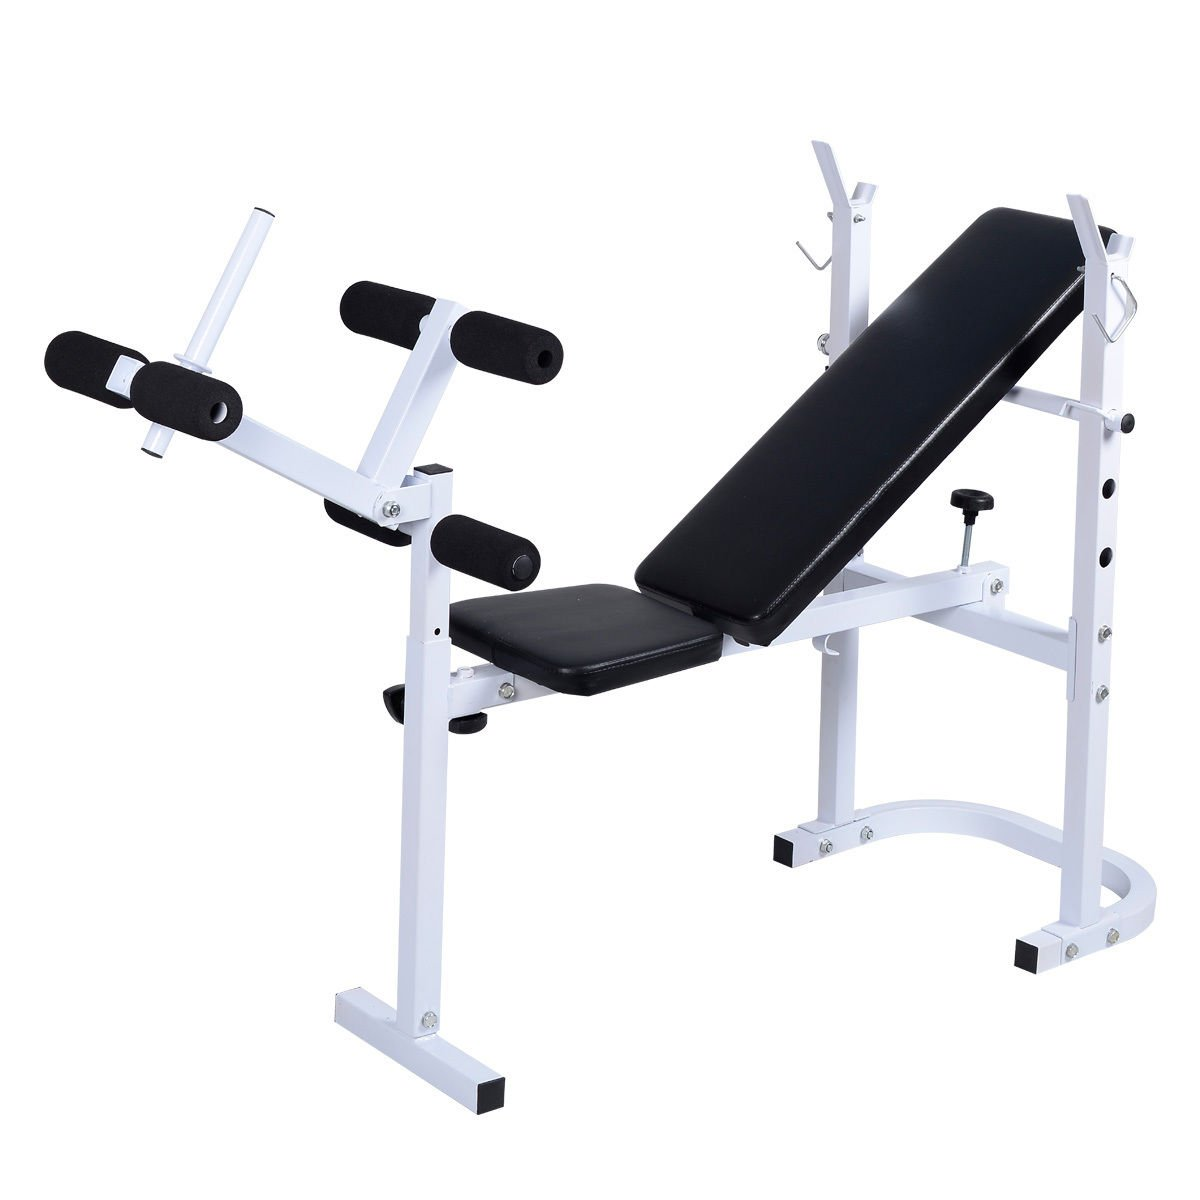 bench standard leg exercise benches workout home seat weight itm chair chest gym fitness